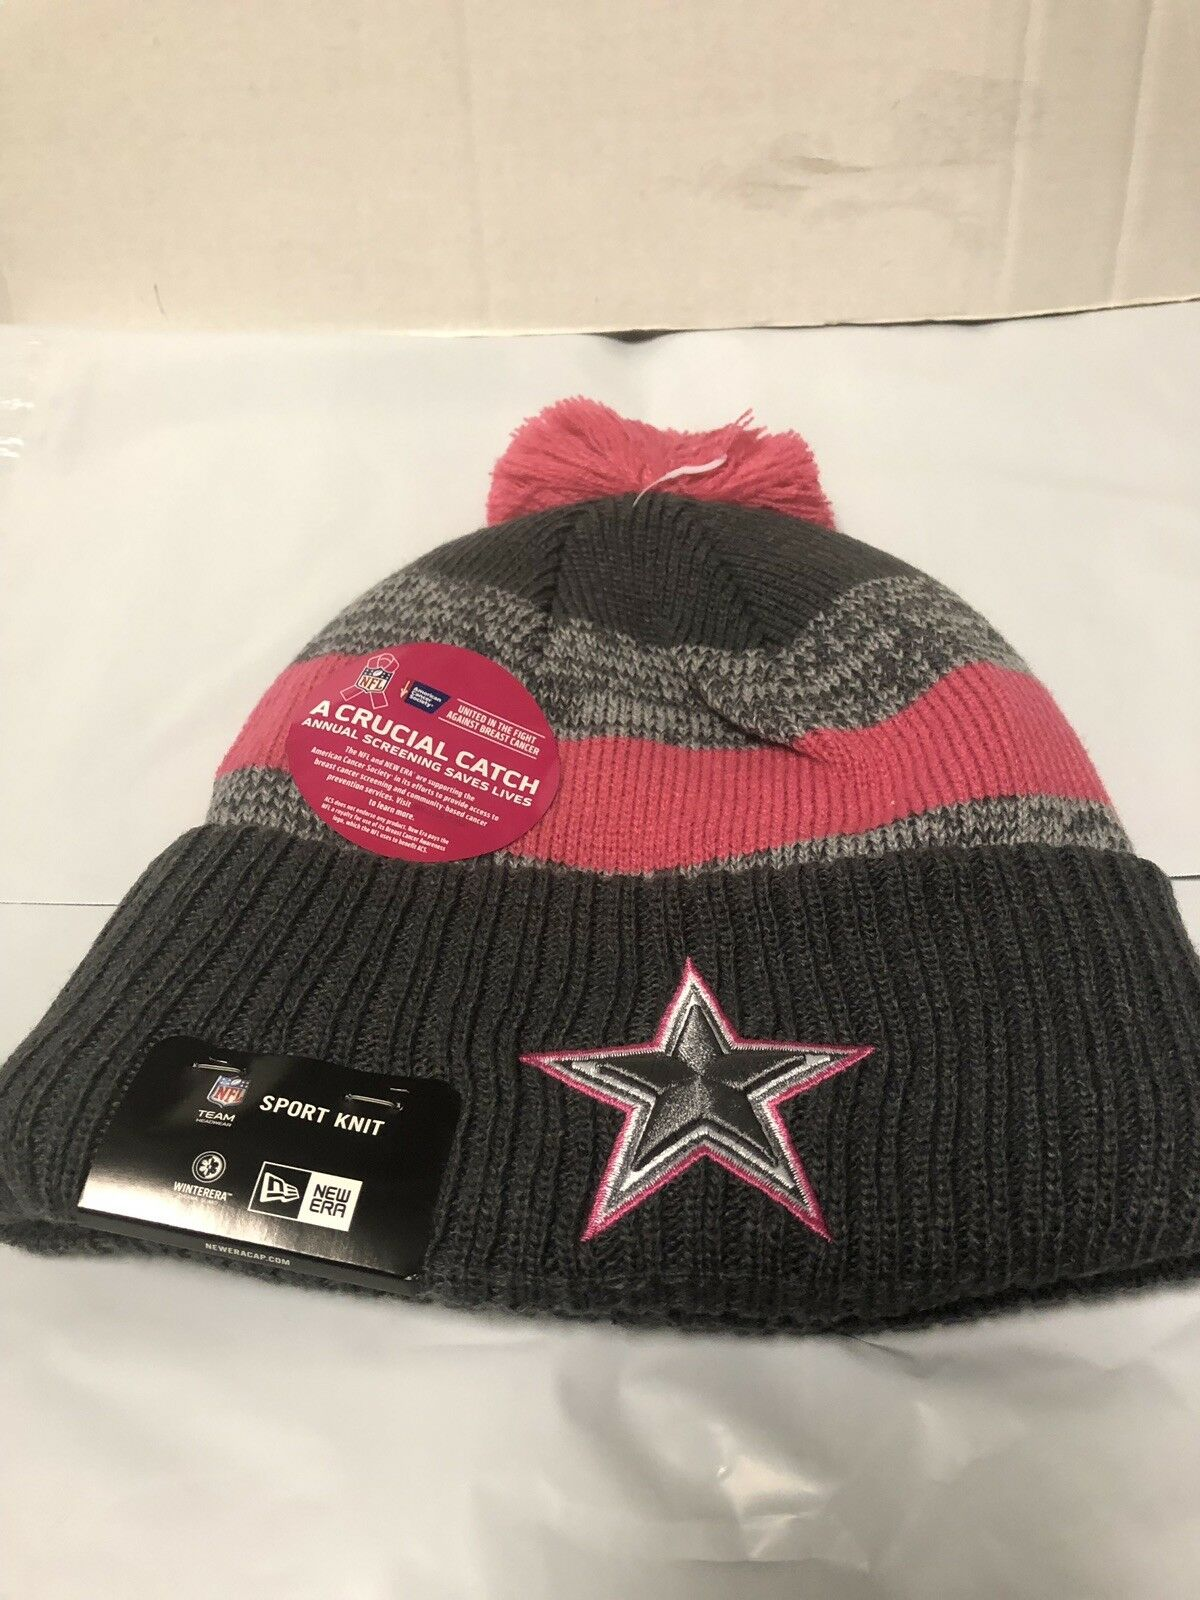 Dallas Cowboys Era Breast Cancer Awareness BCA 2016 NFL Sports Knit Hat for  sale online  c06db9a14